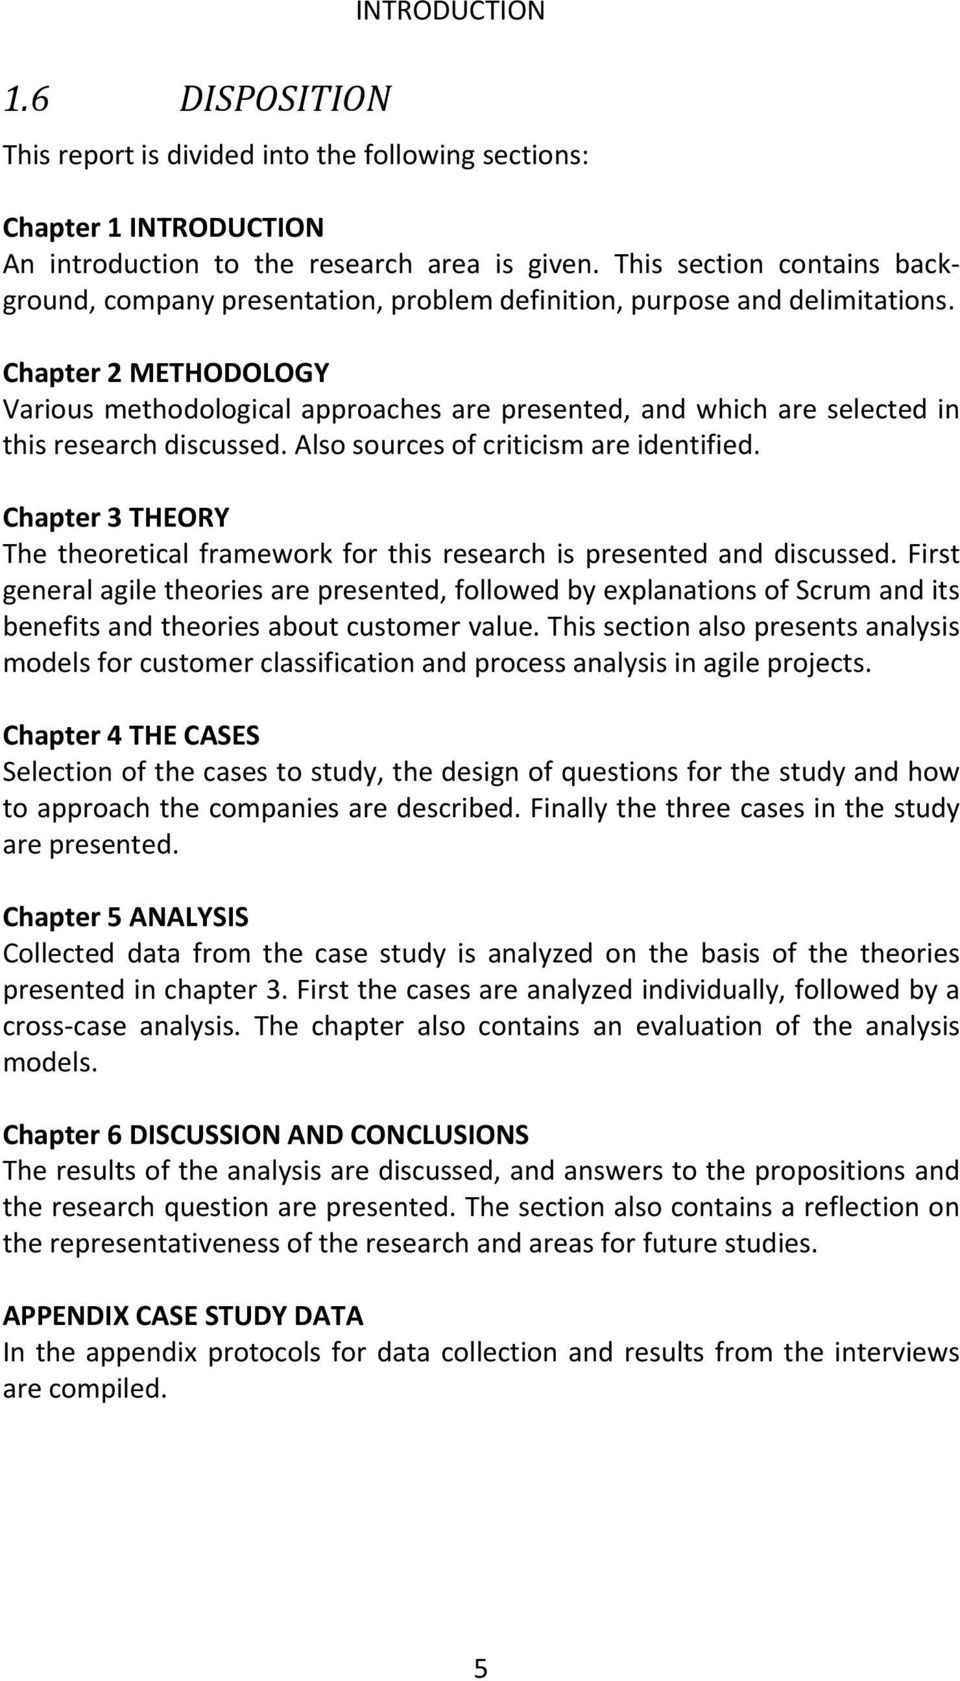 Chapter 2 METHODOLOGY Various methodological approaches are presented, and which are selected in this research discussed. Also sources of criticism are identified.